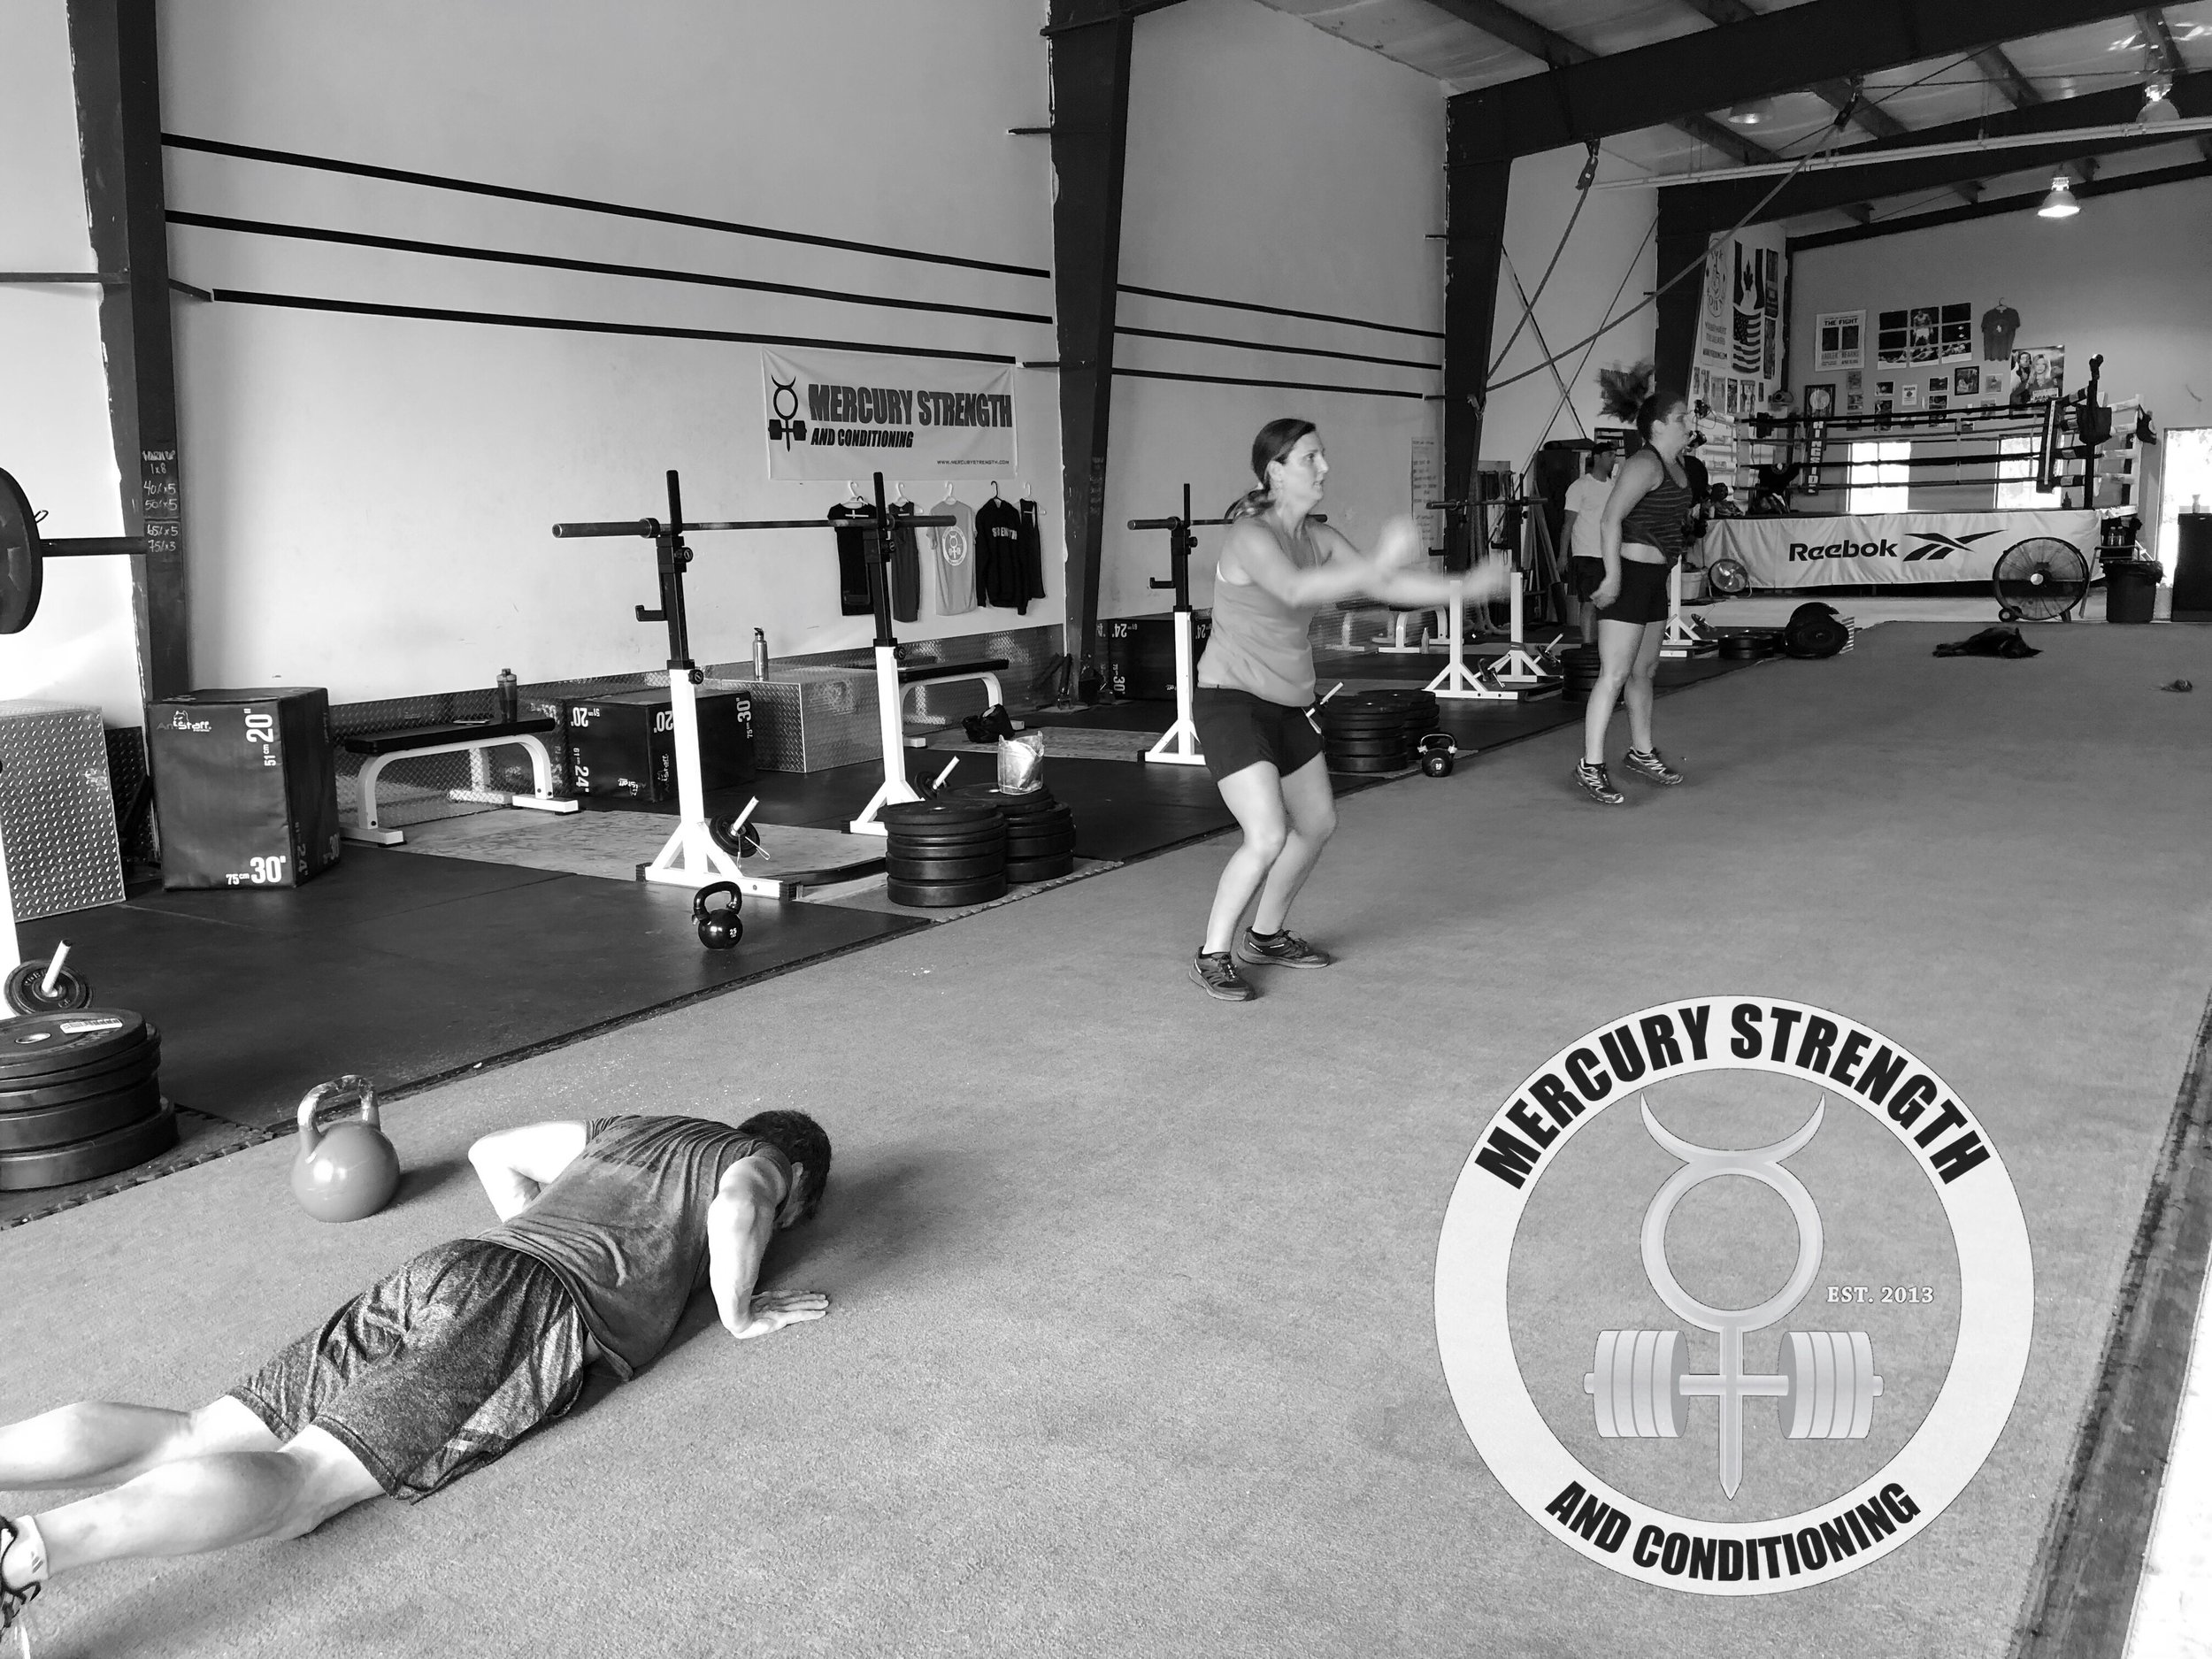 Paul, Kim, and Christine with some burpees during Tuesday's workout